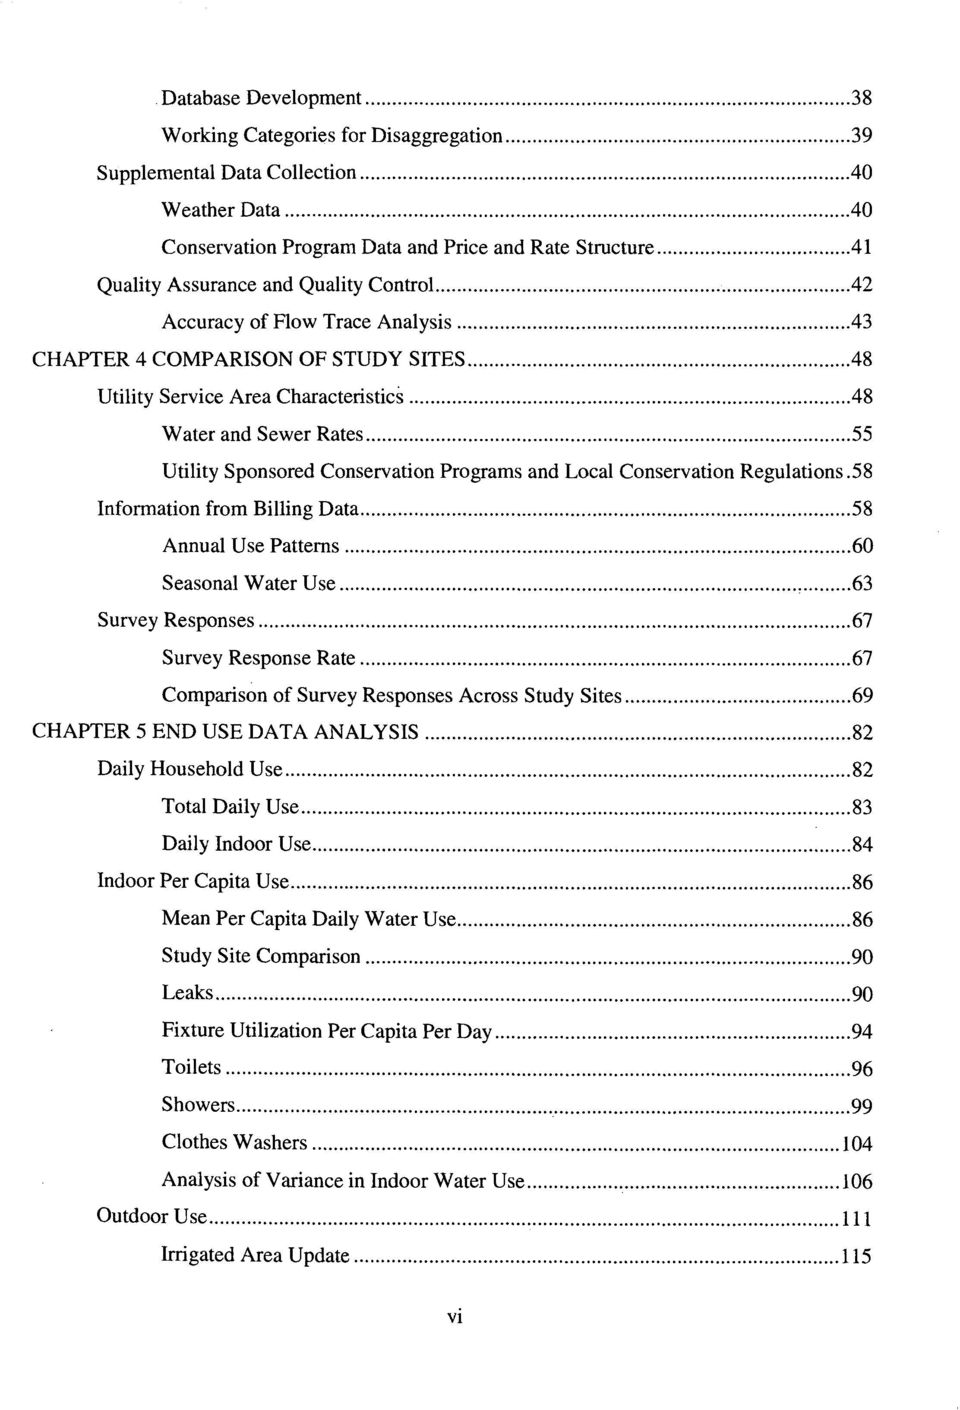 .......55 Utility Sponsored Conservation Programs and Local Conservation Regulations. 5 8 Information from Billing Data...58 Annual Use Patterns...60 Seasonal Water Use...63 Survey Responses.